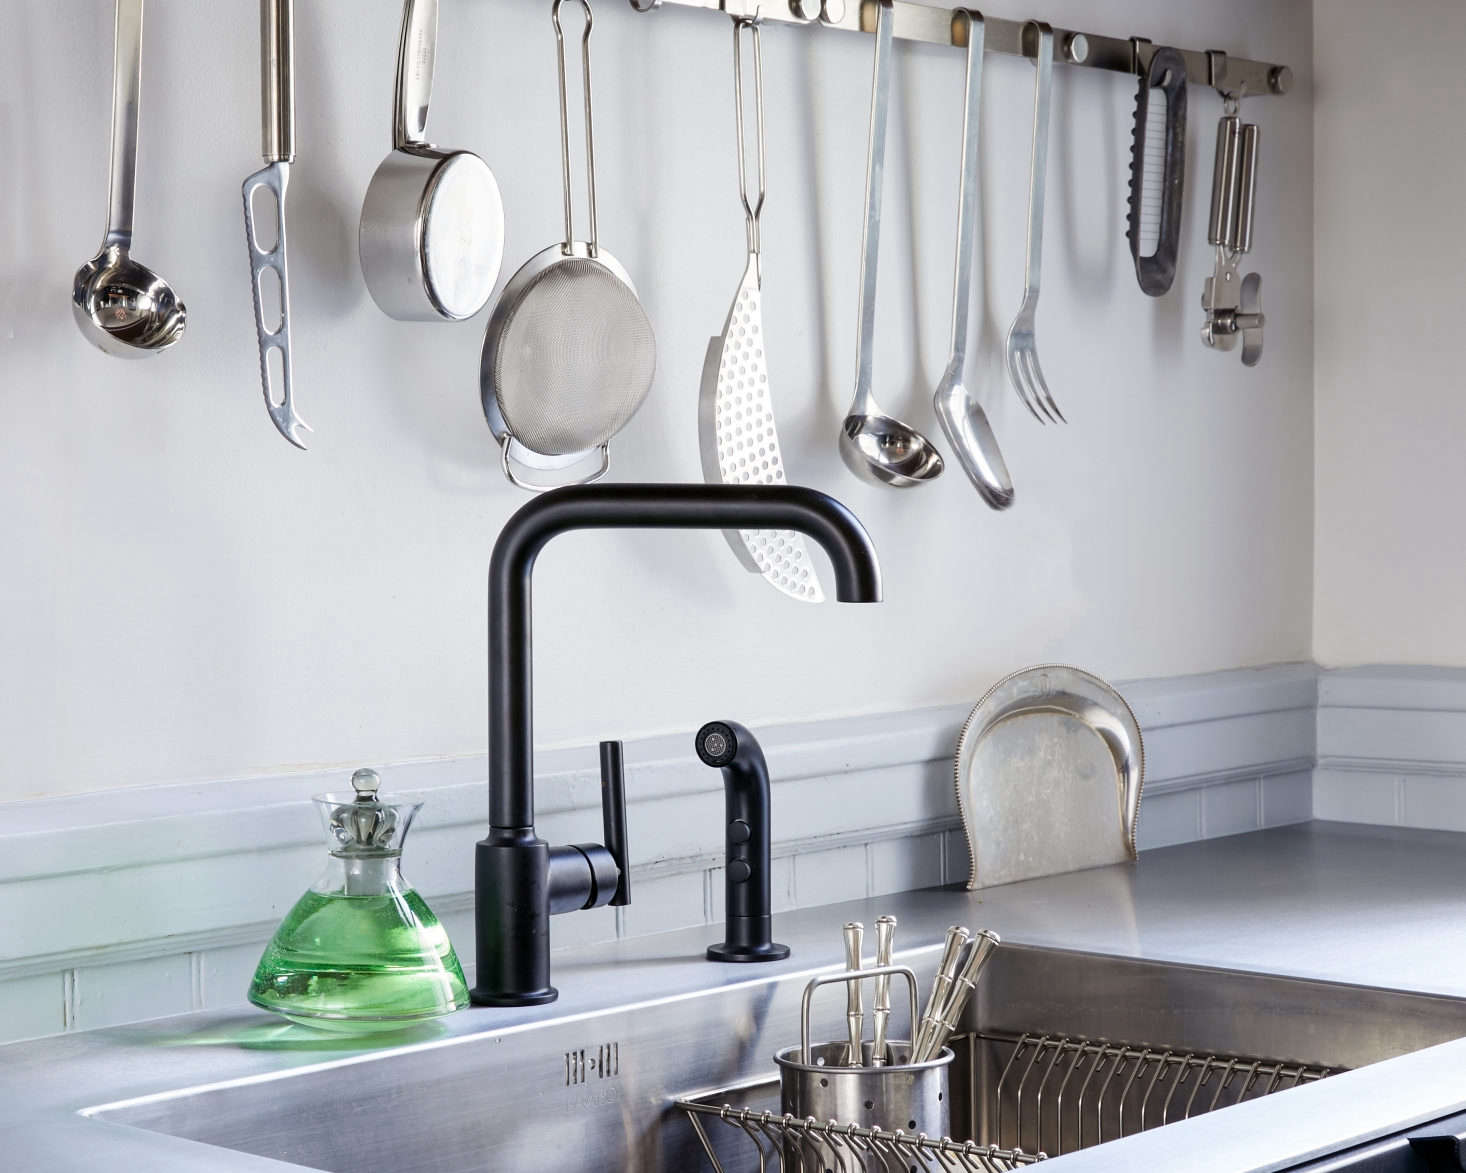 The open kitchen utensil rail is from German company Rosle and the matte black Purist Single Handle Faucet is from Kohler. &#8